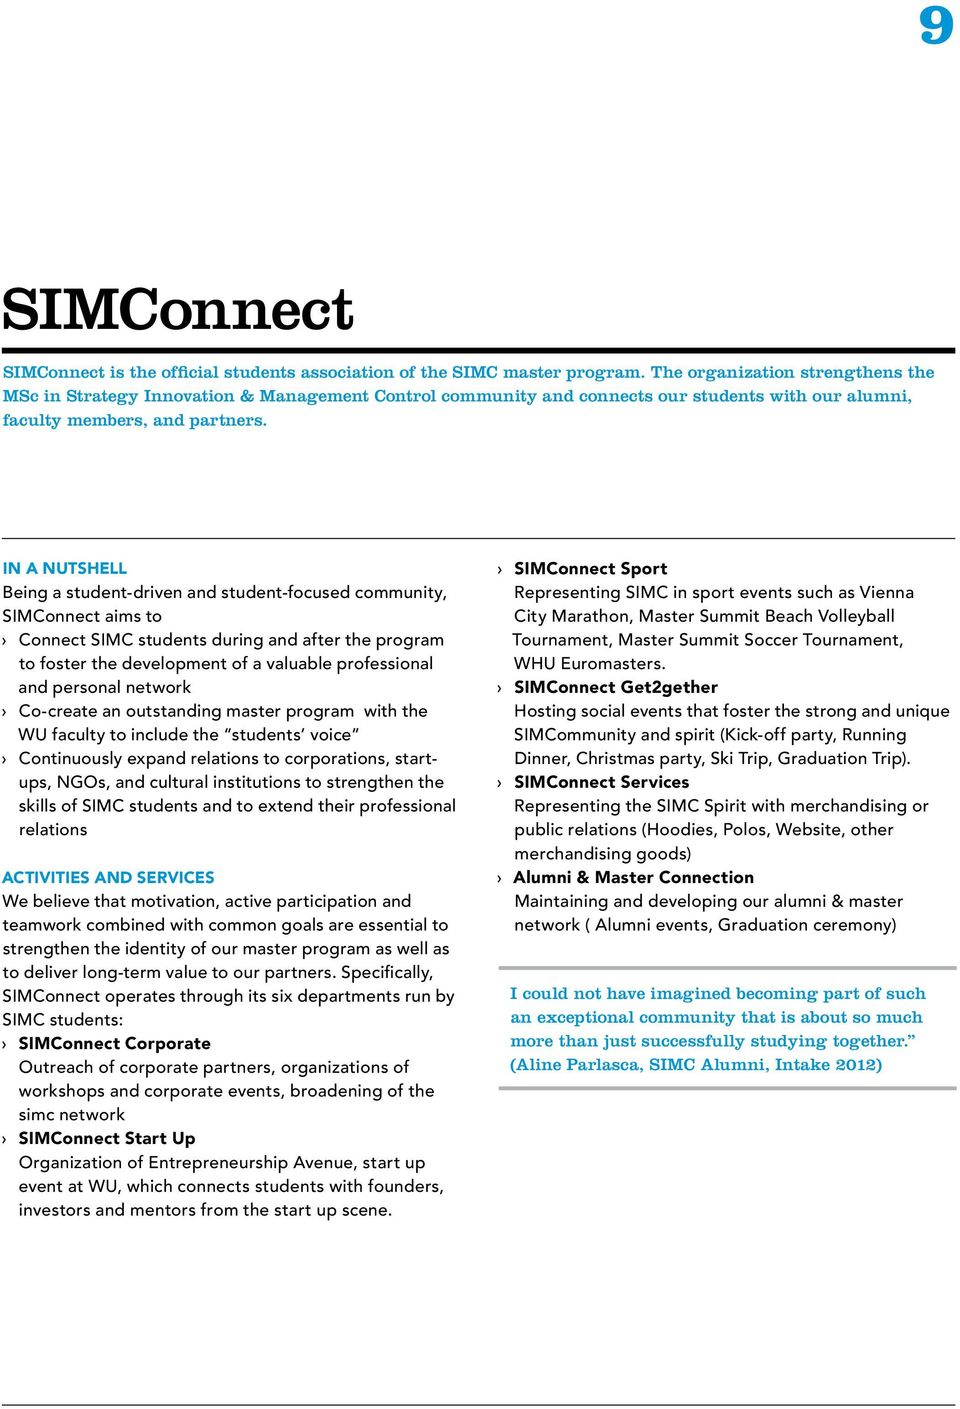 IN A NUTSHELL Being a student-driven and student-focused community, SIMConnect aims to Connect SIMC students during and after the program to foster the development of a valuable professional and